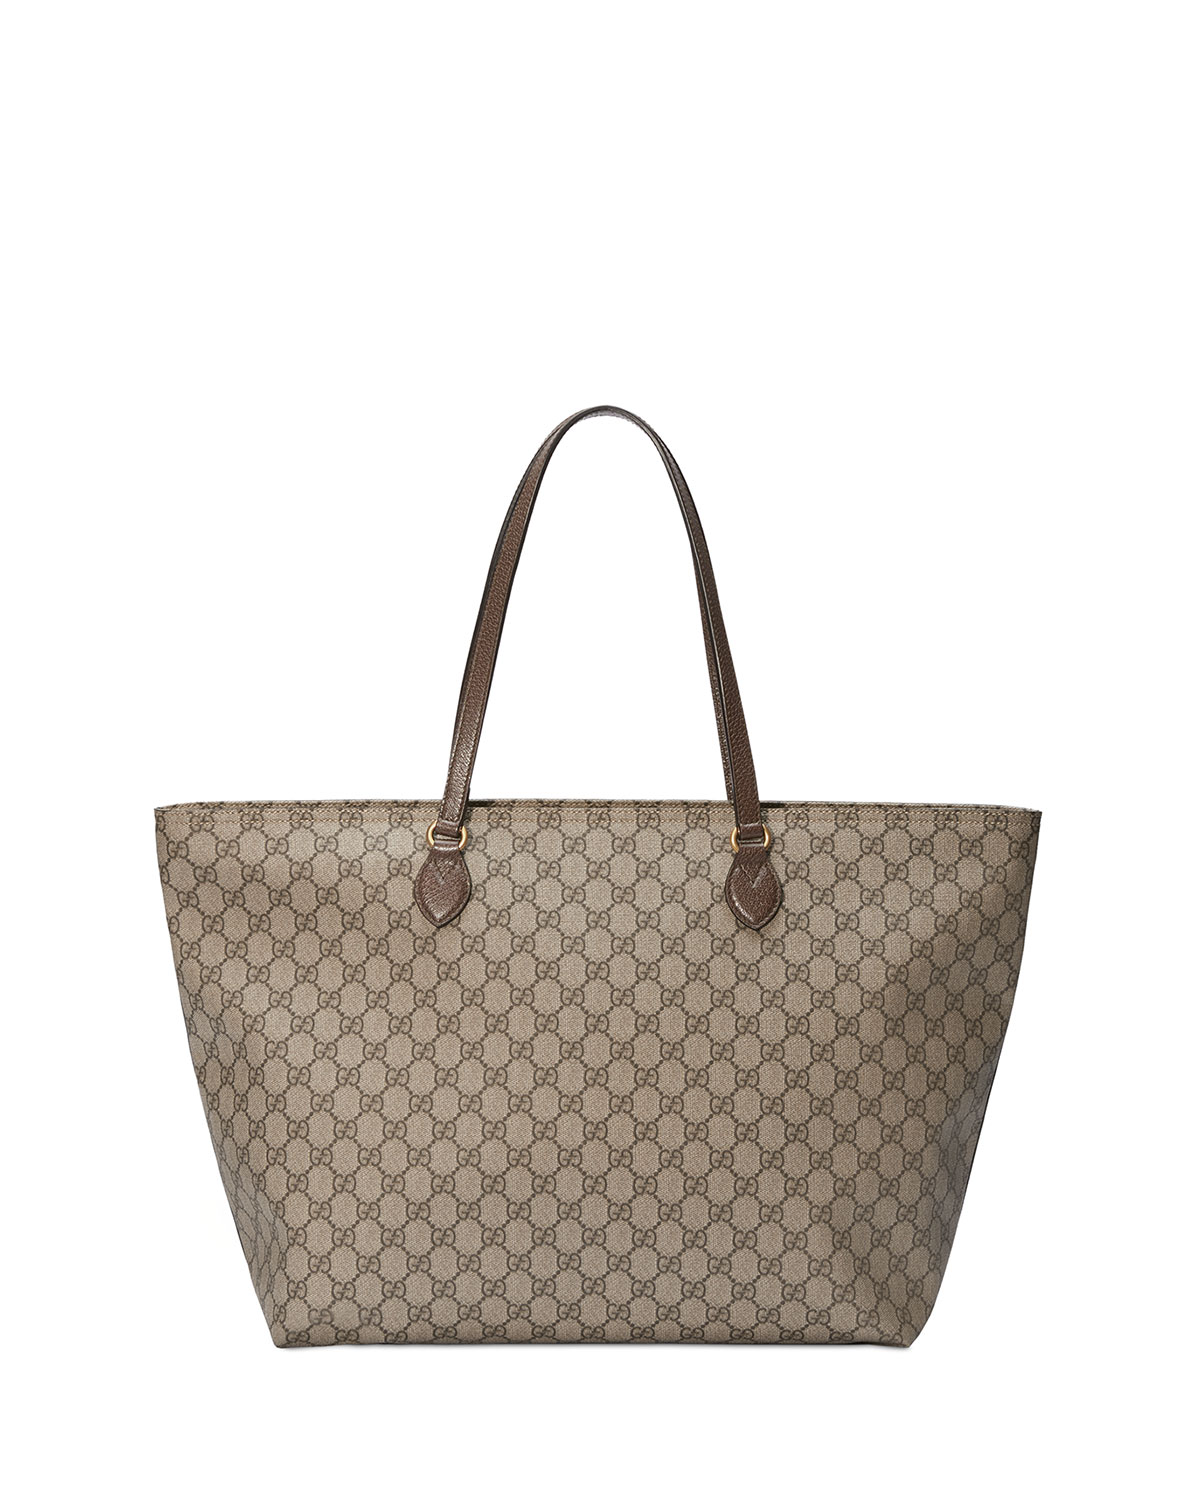 be64a07d264a Gucci Ophidia Medium Soft GG Supreme Canvas Tote Bag | Neiman Marcus